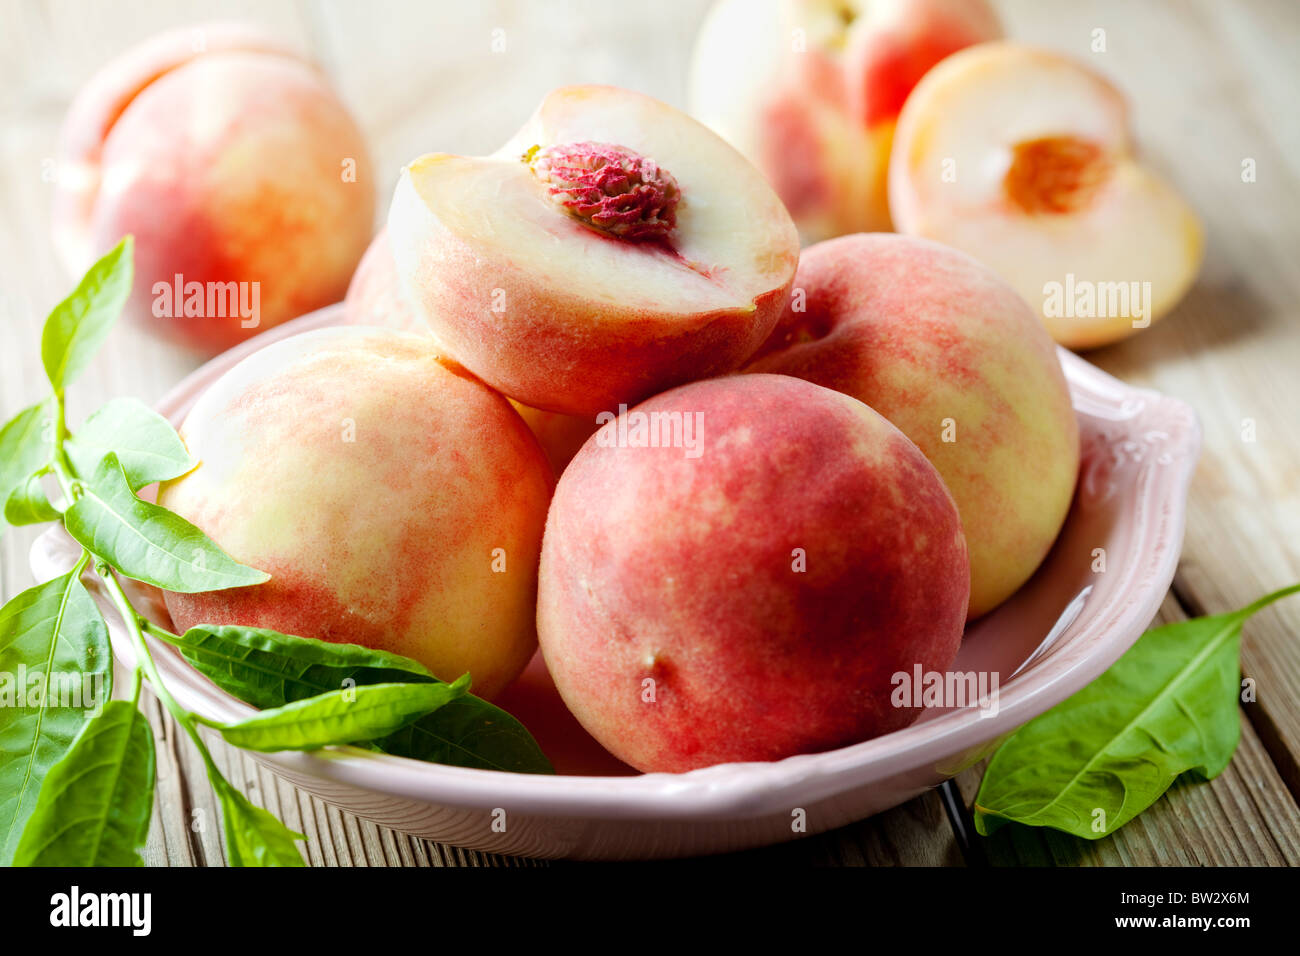 bowl of delicious peaches - Stock Image